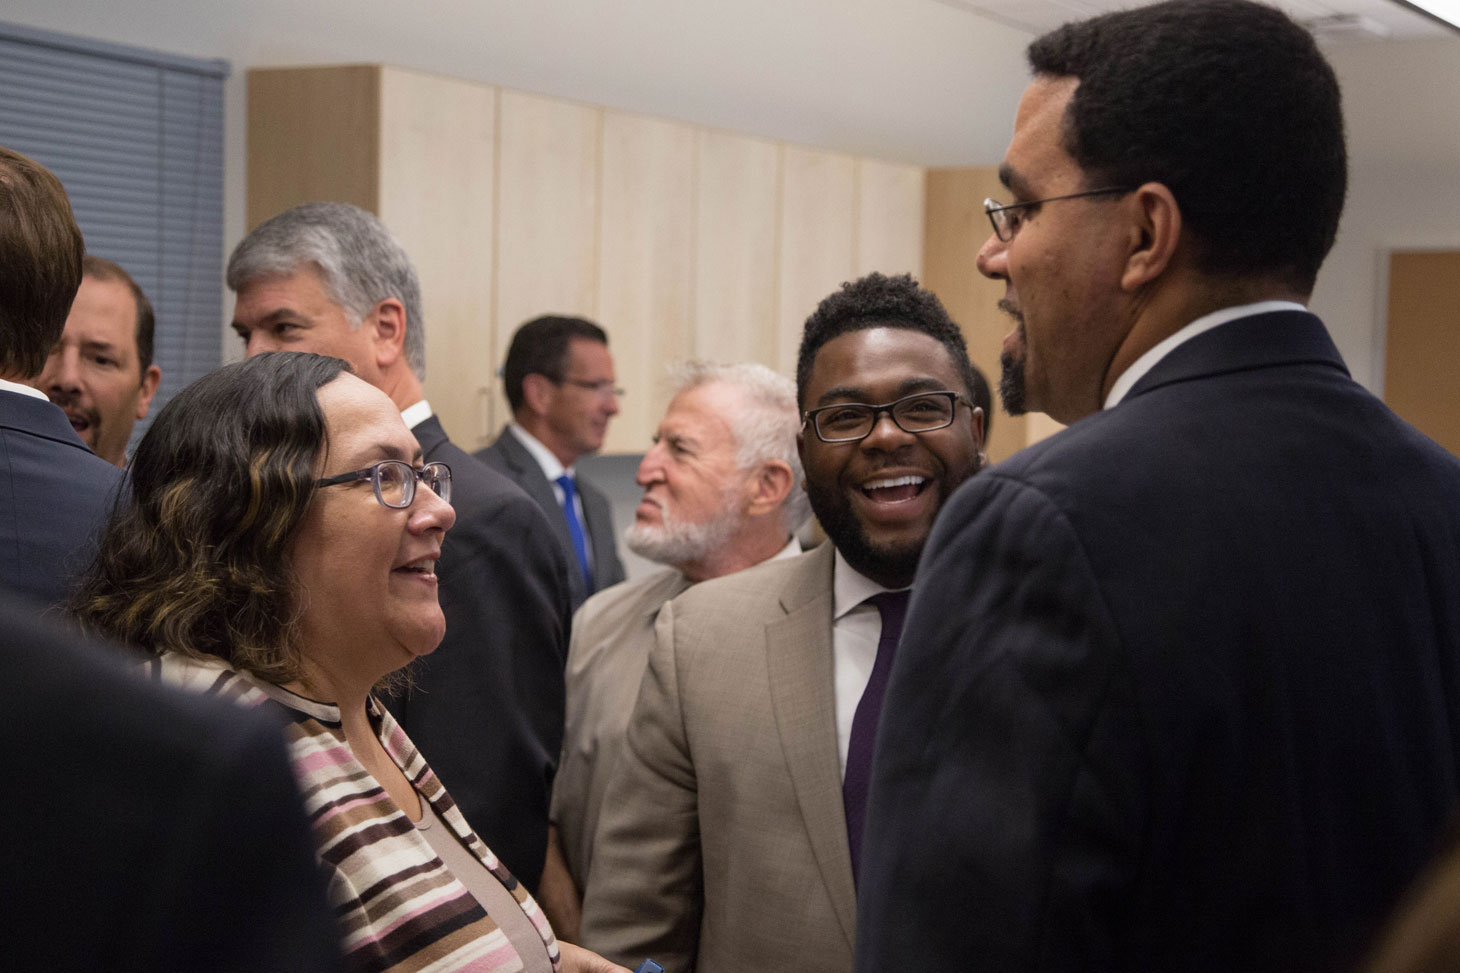 Rep. McGee with the U.S. Secretary of Education